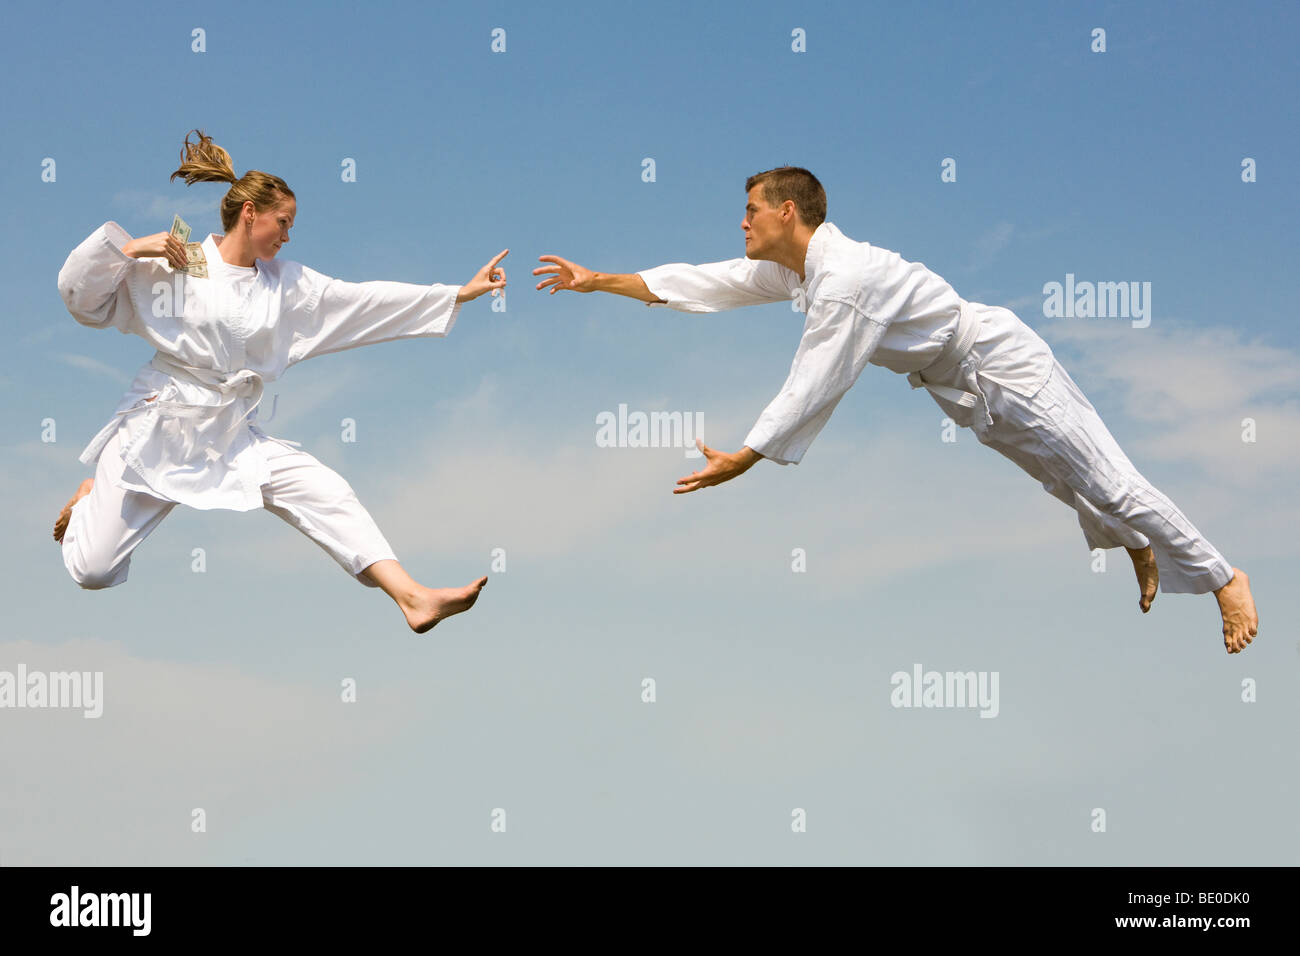 Young woman holding cash fighting young man as they fly through the air - Stock Image